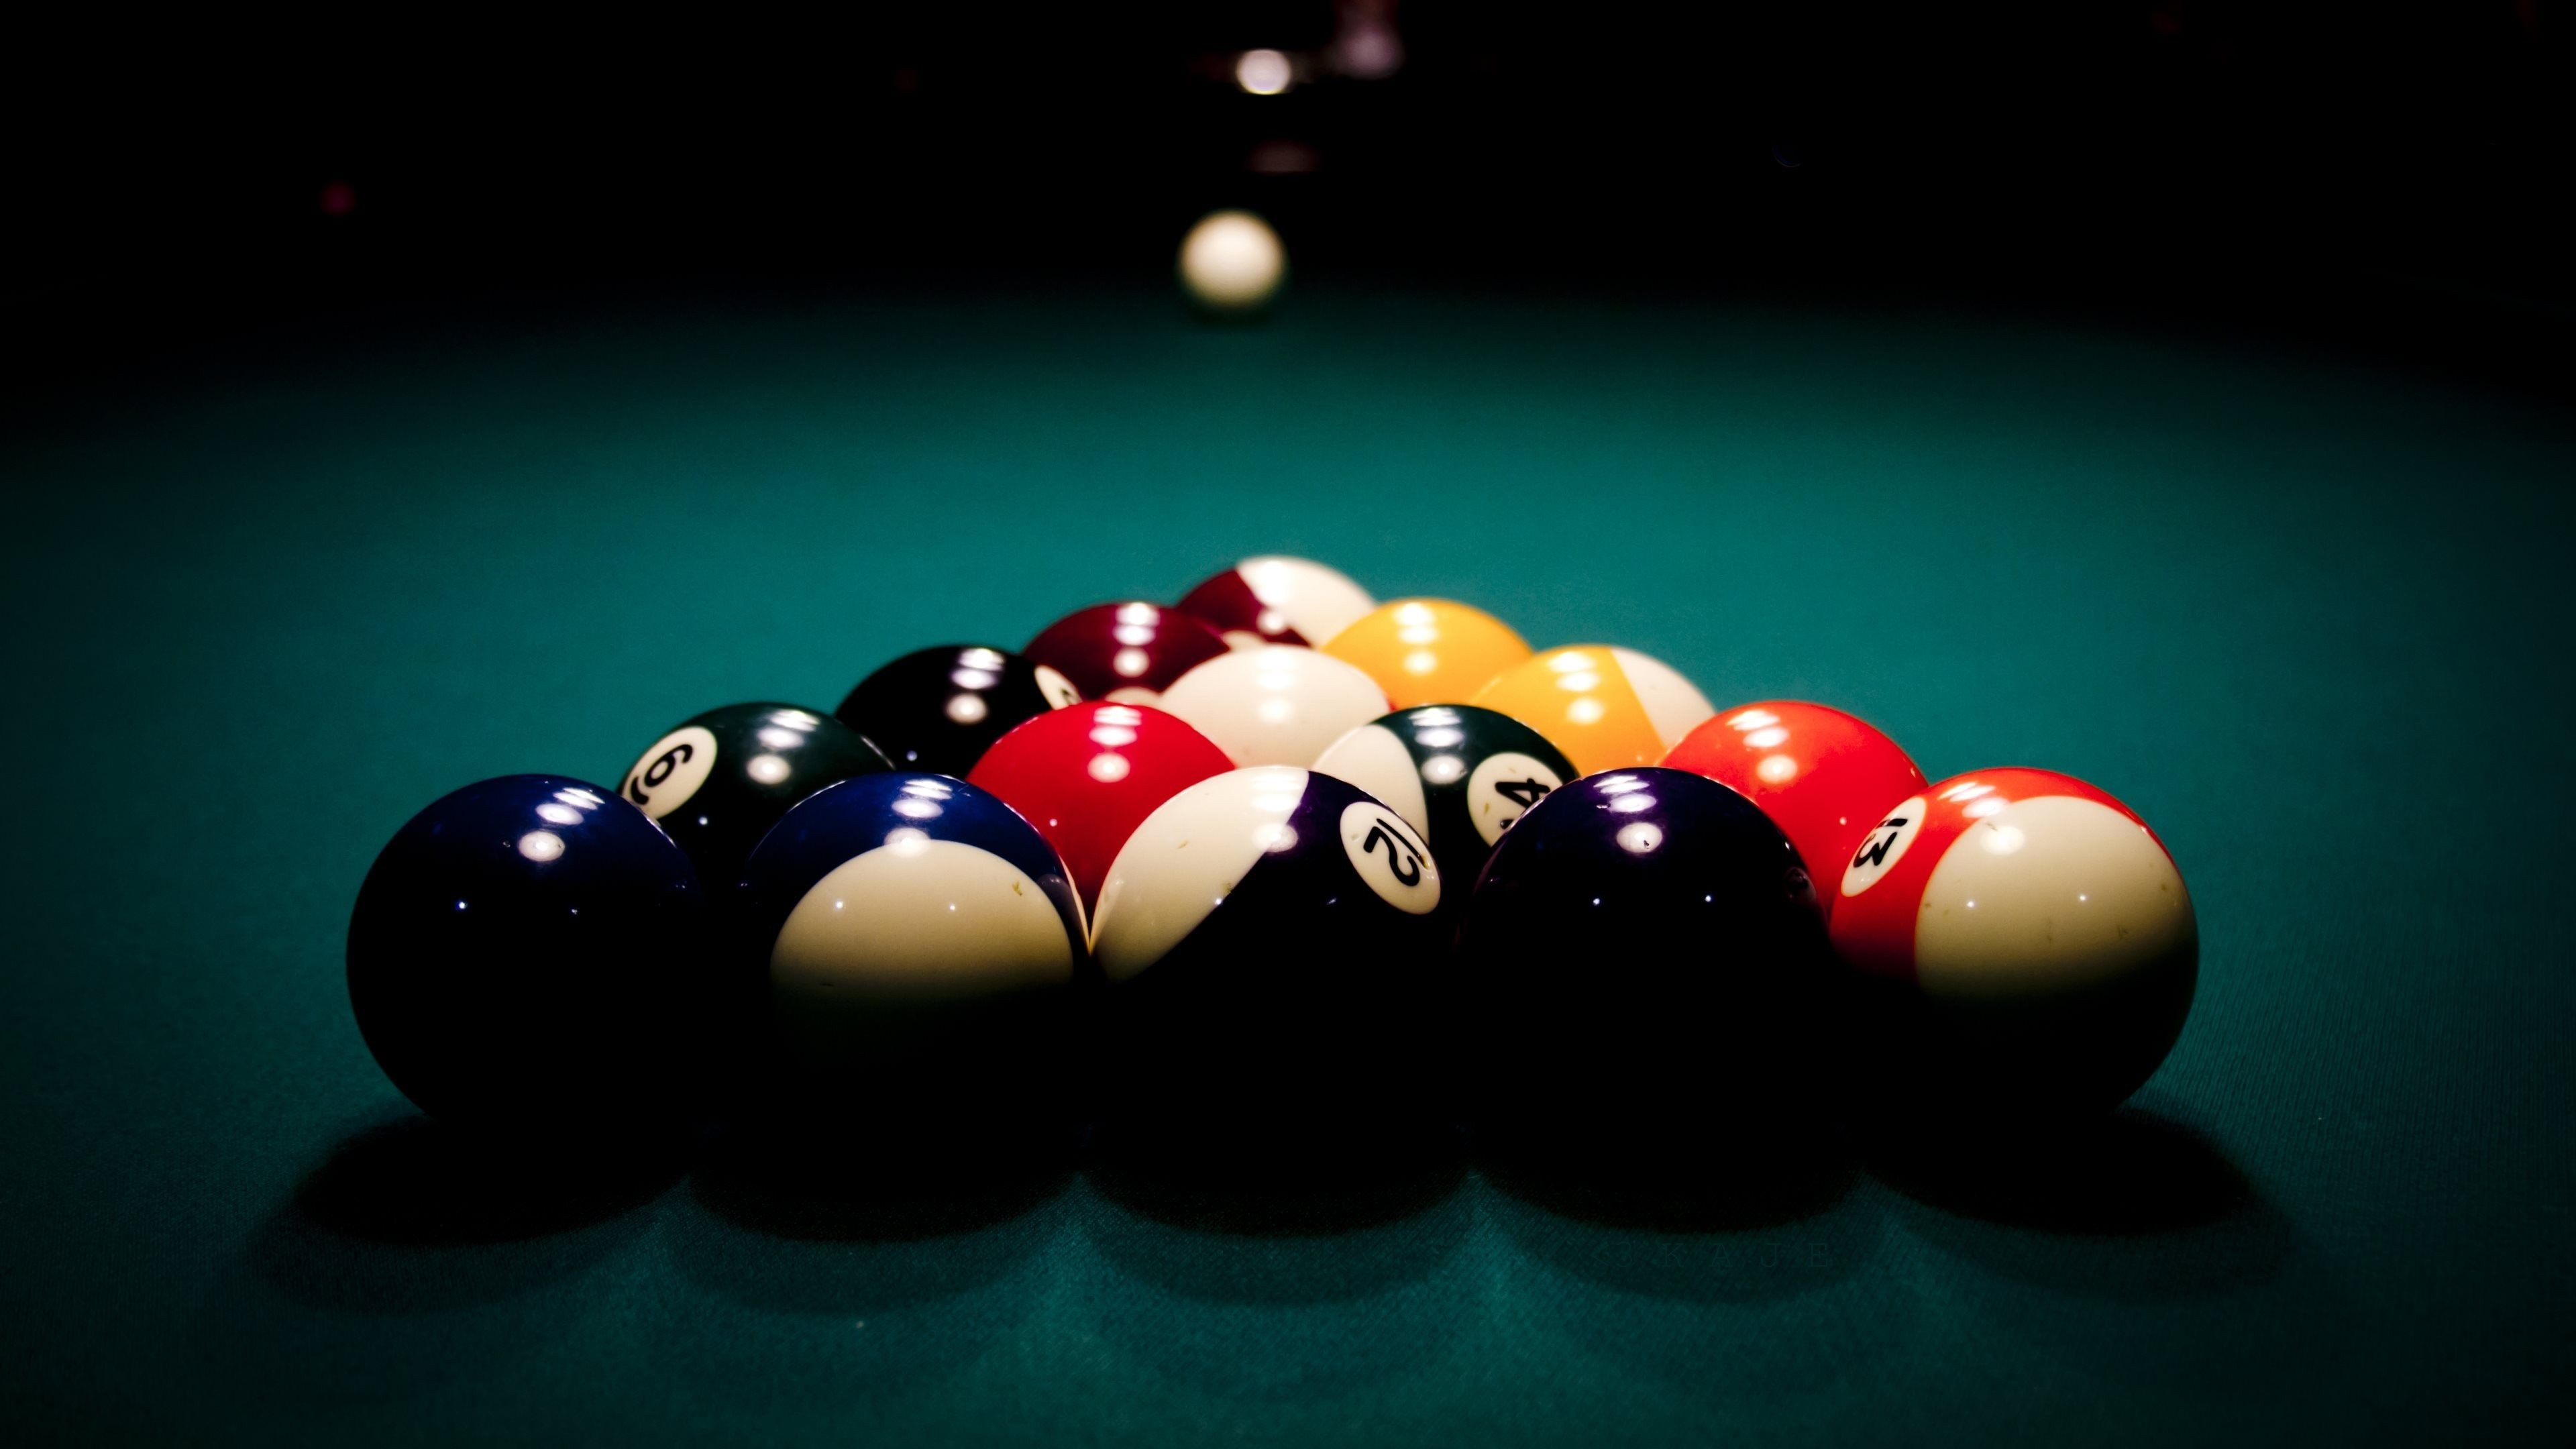 3840x2160 billard 4k wallpaper for downloading Billiard in 2019 3840x2160